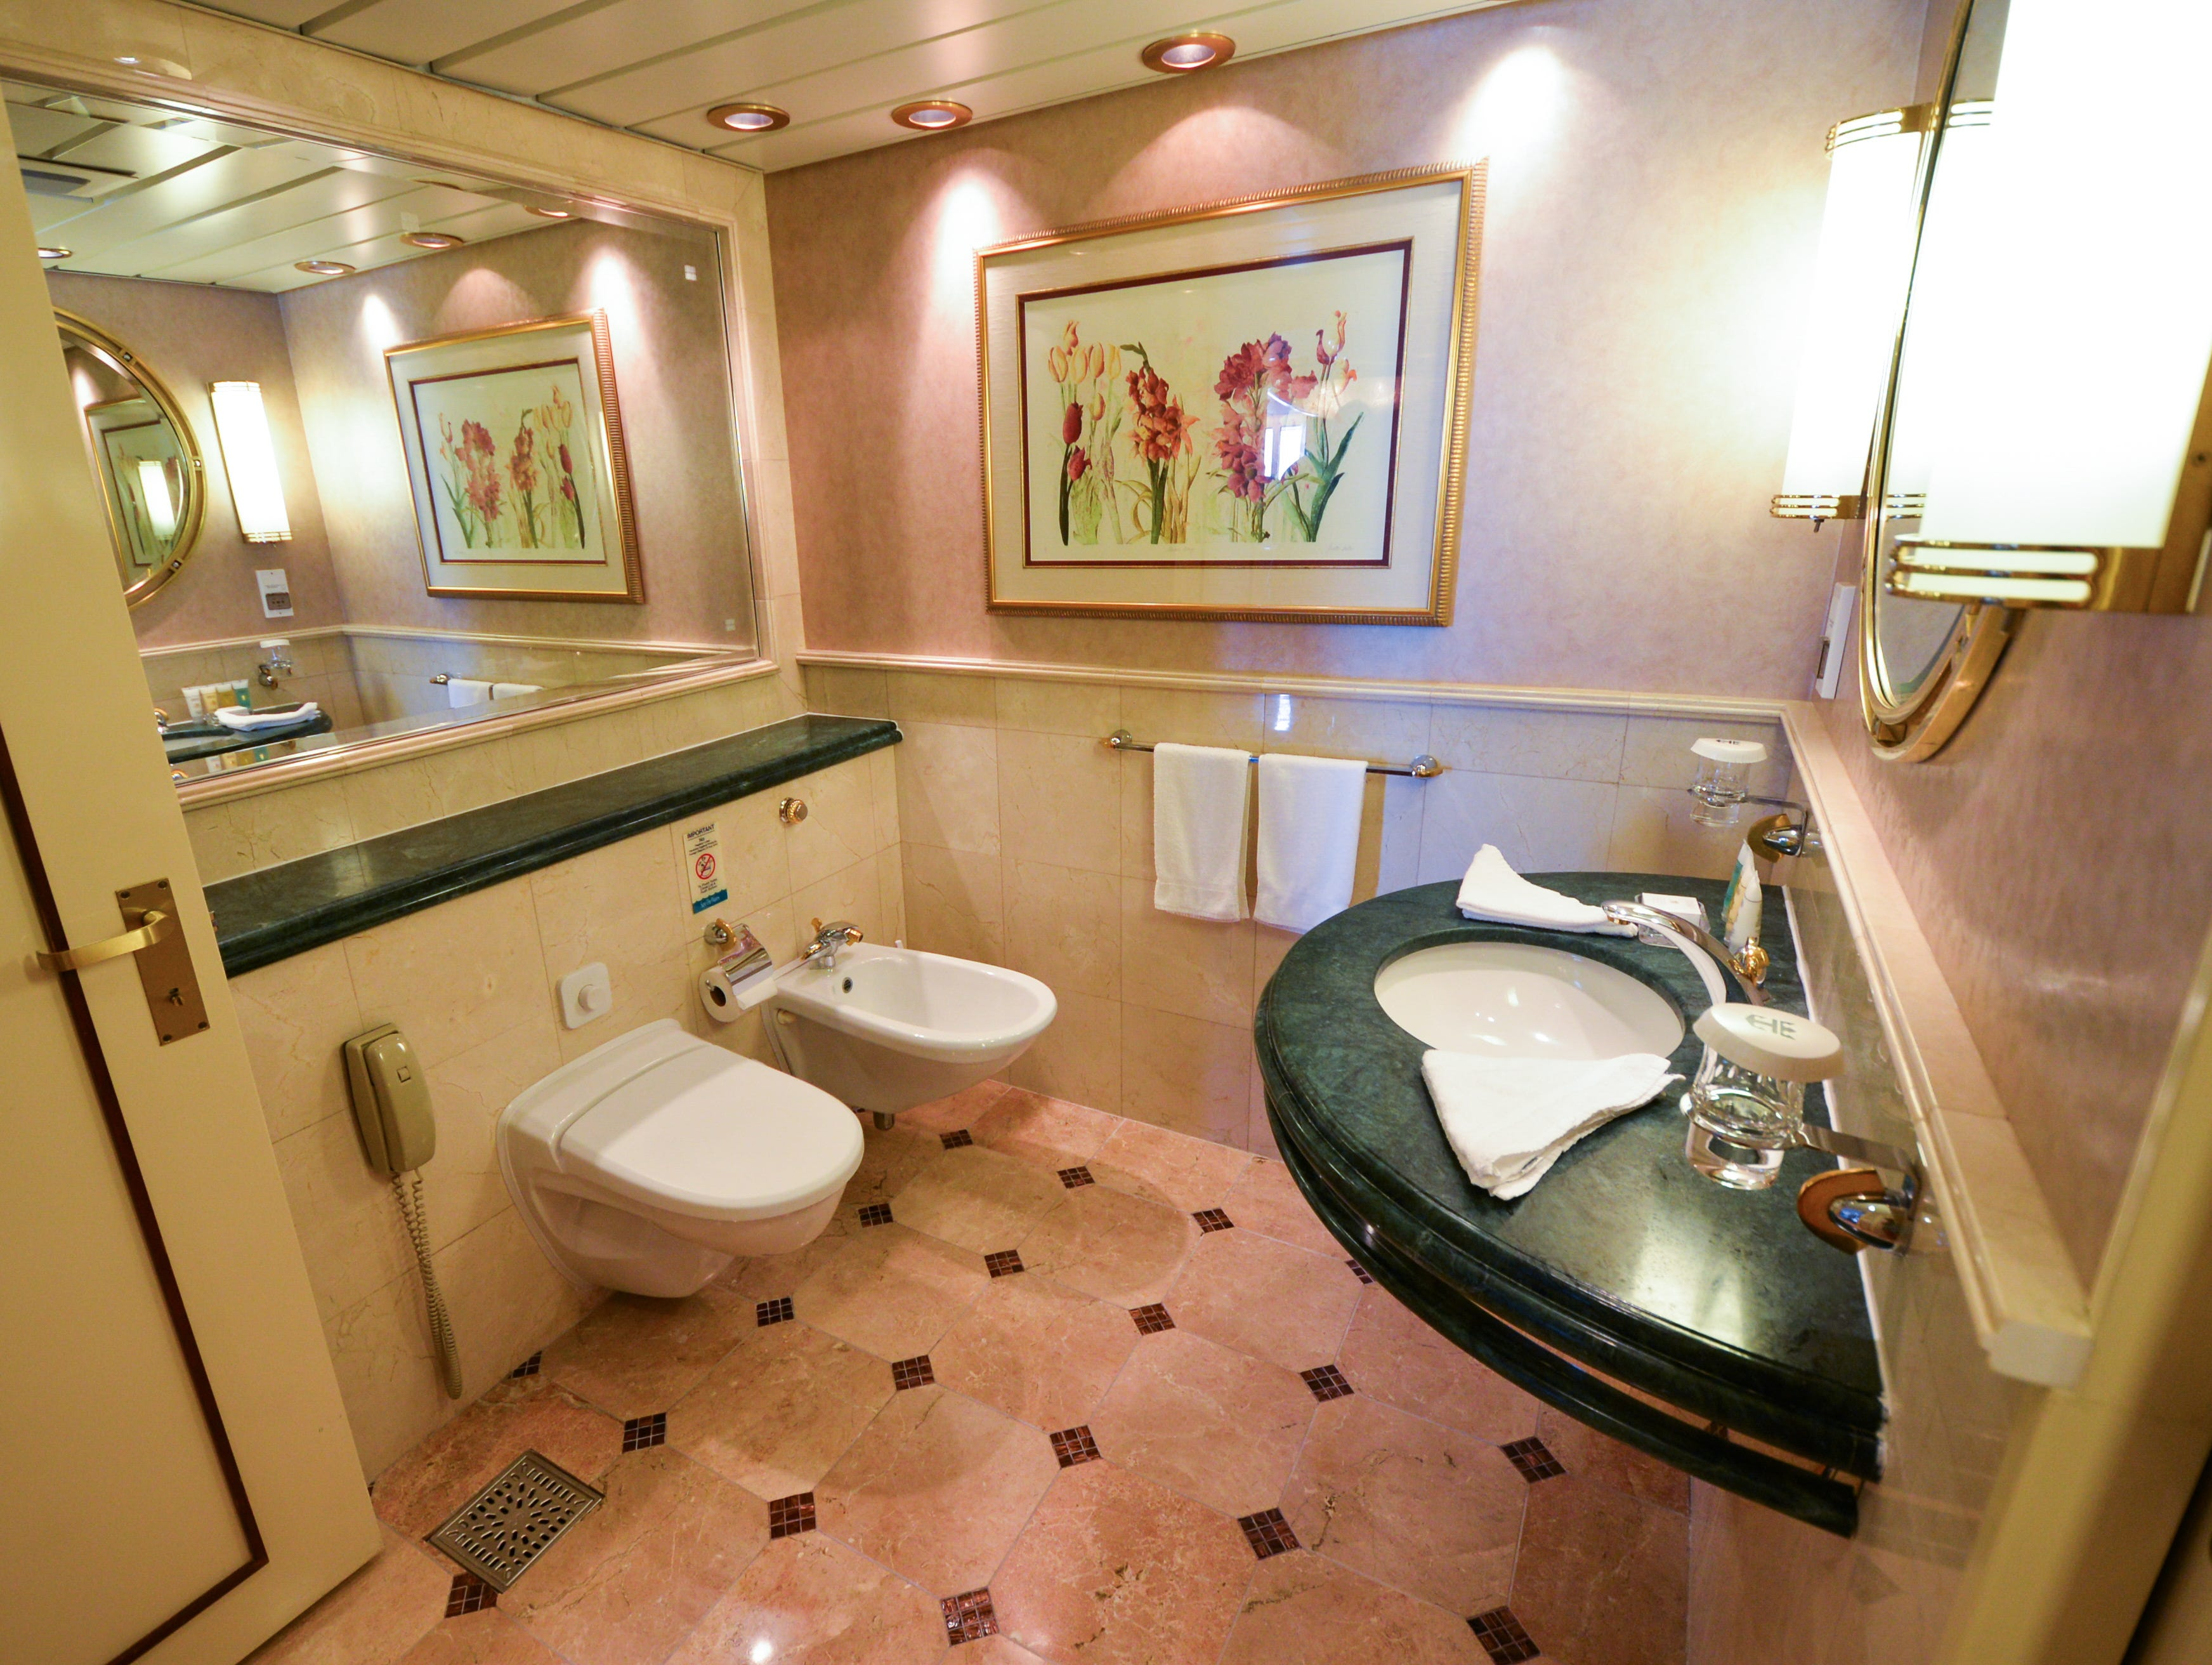 The Royal Suite master bathroom's toilet and bidet are separated into an attached room.